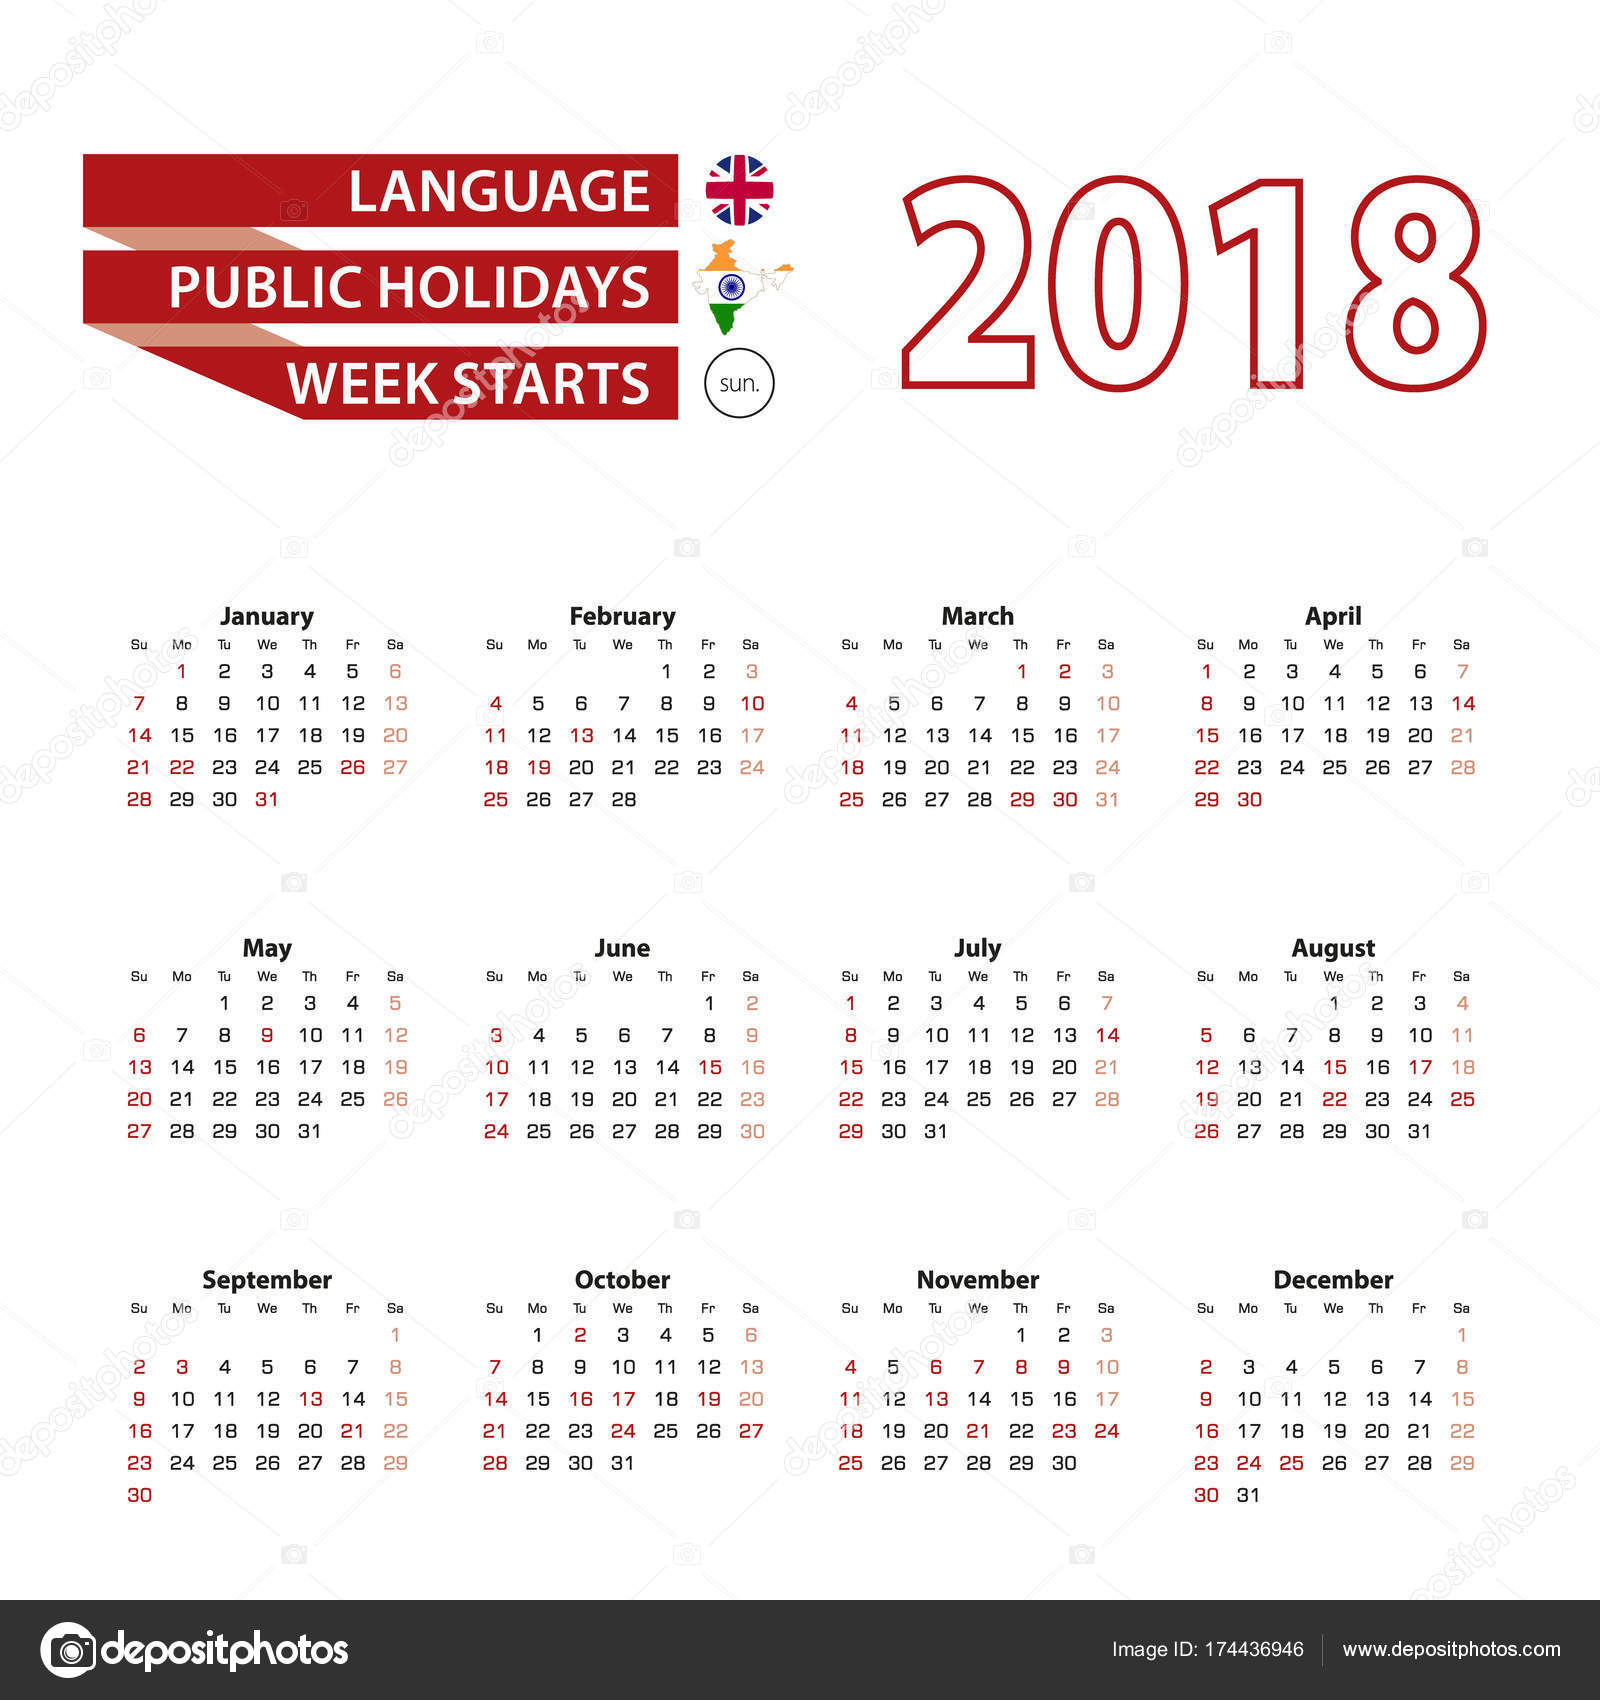 calendar 2018 in english language with public holidays the count